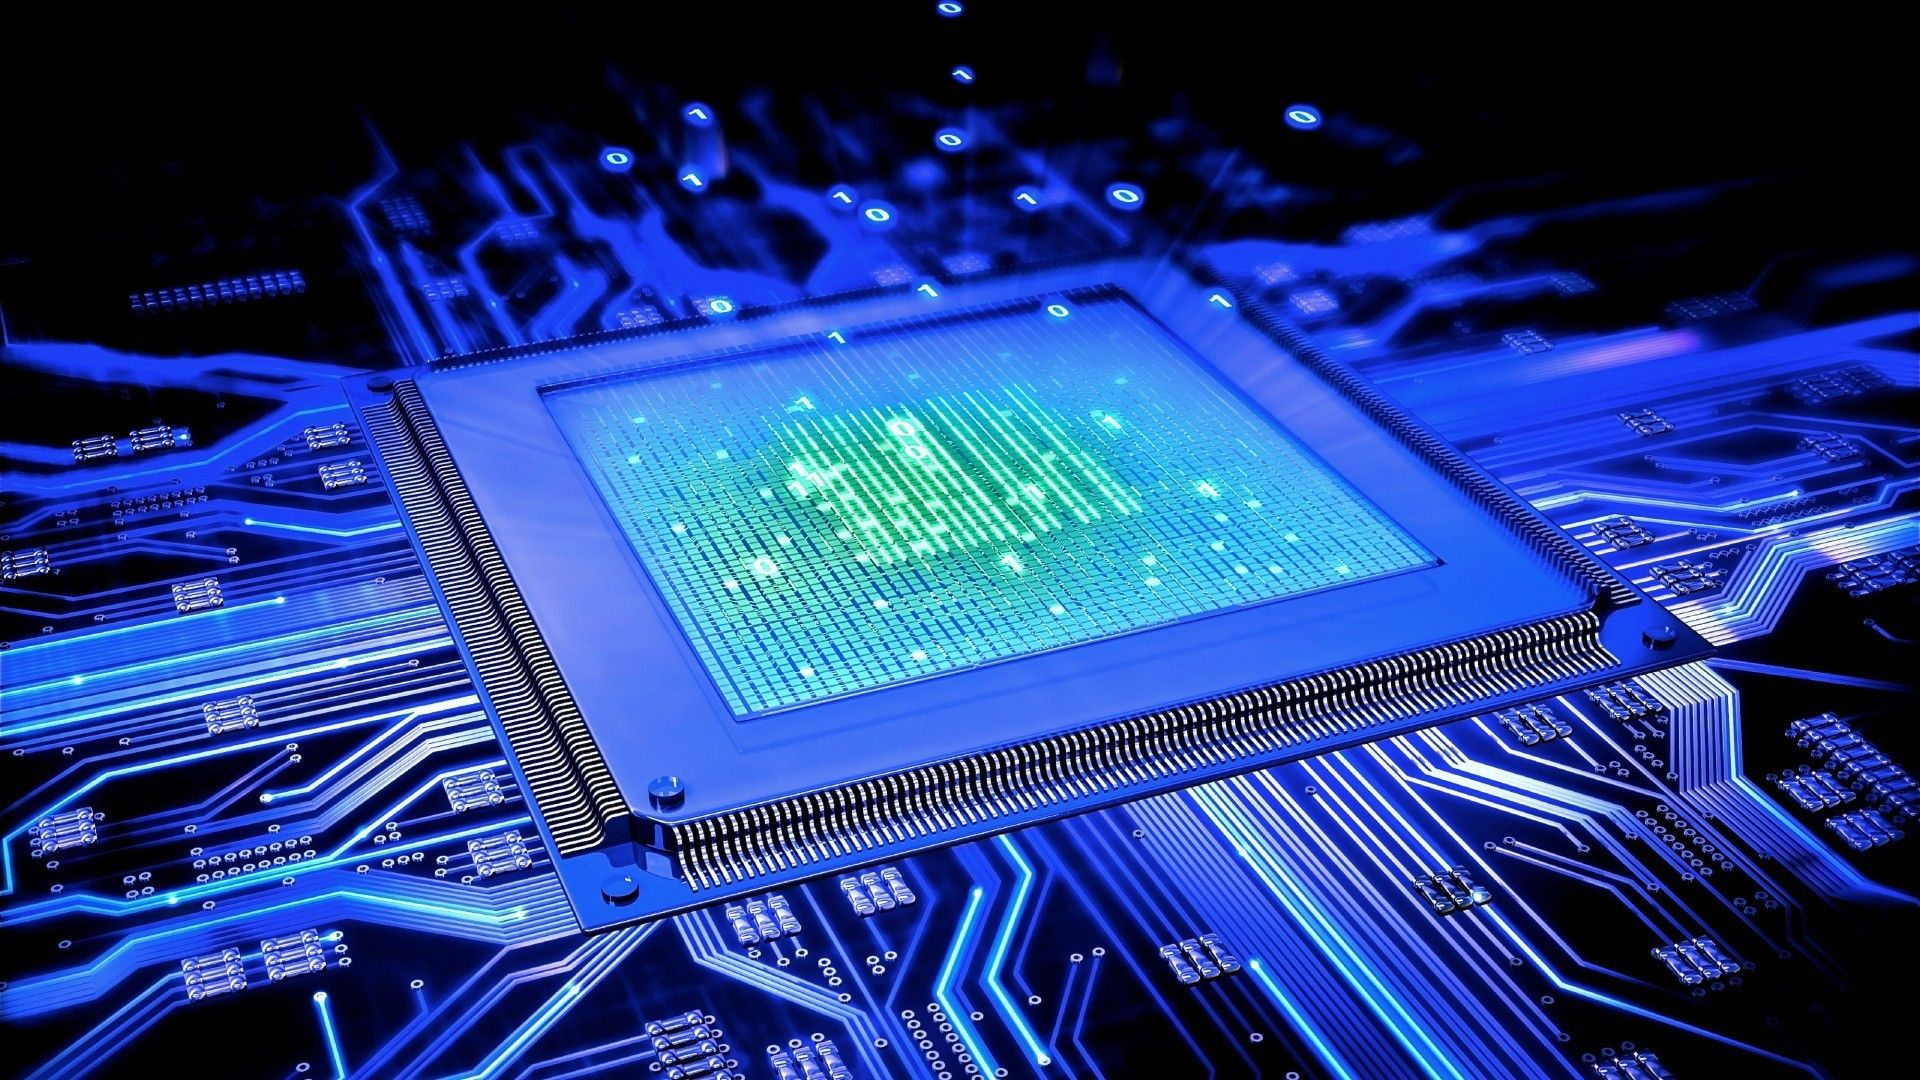 Motherboard Blue Circuits Circuit Board Computer Wallpaper